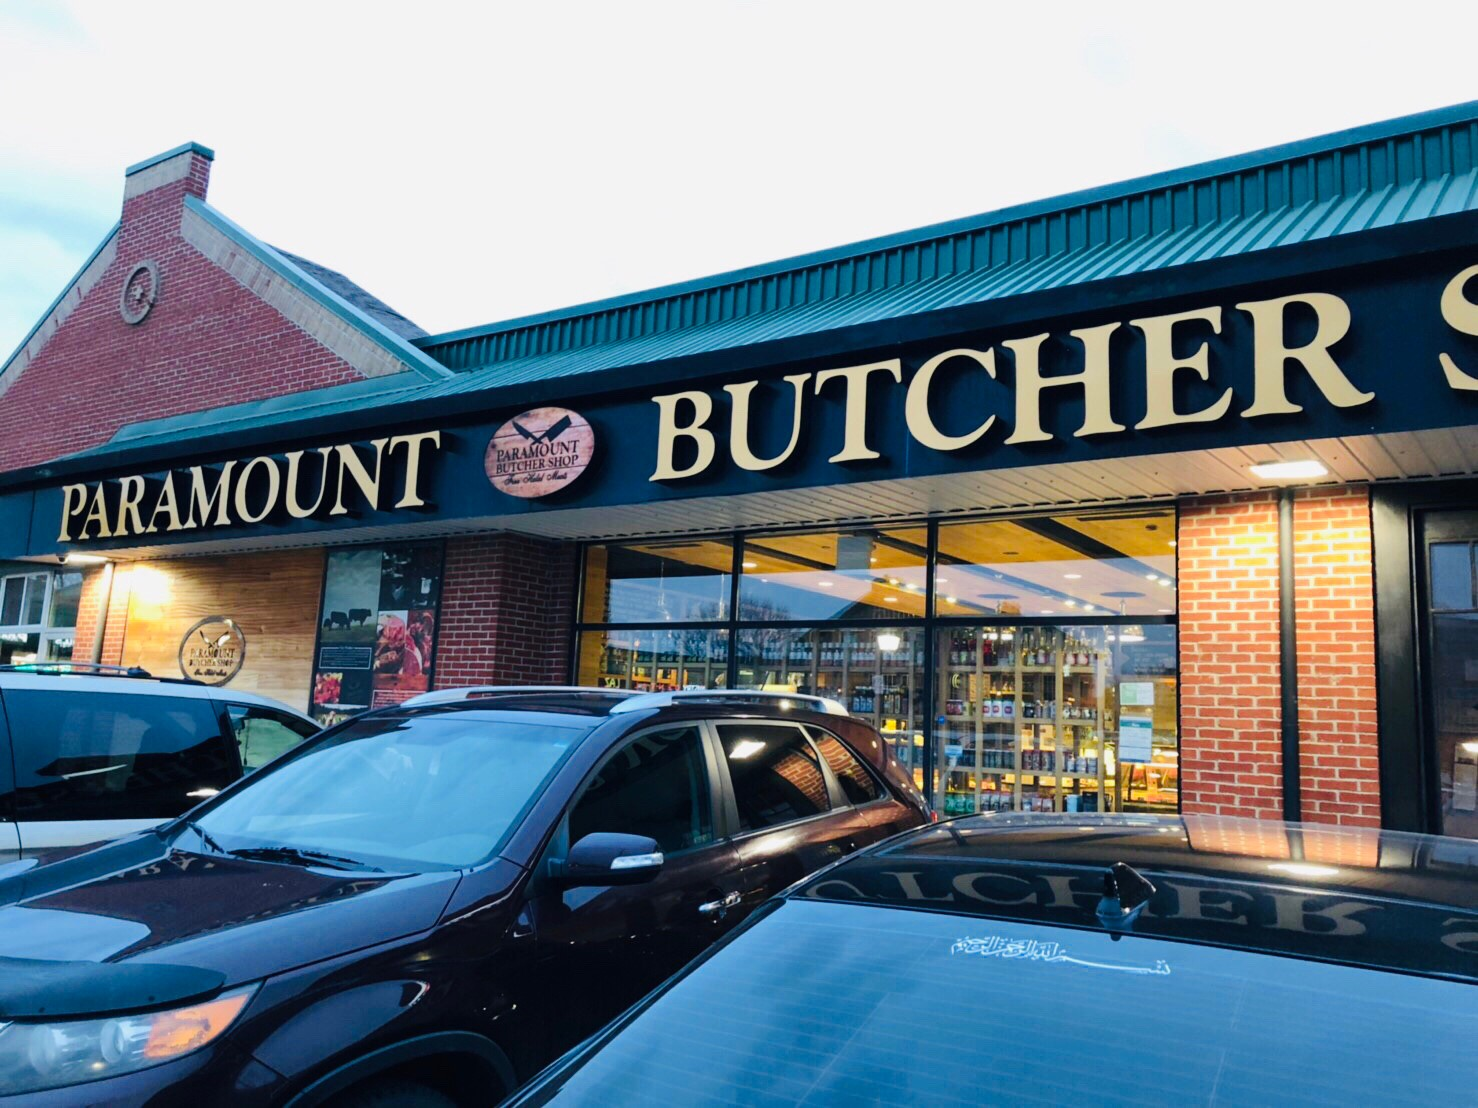 Paramount Butcher Shop ①